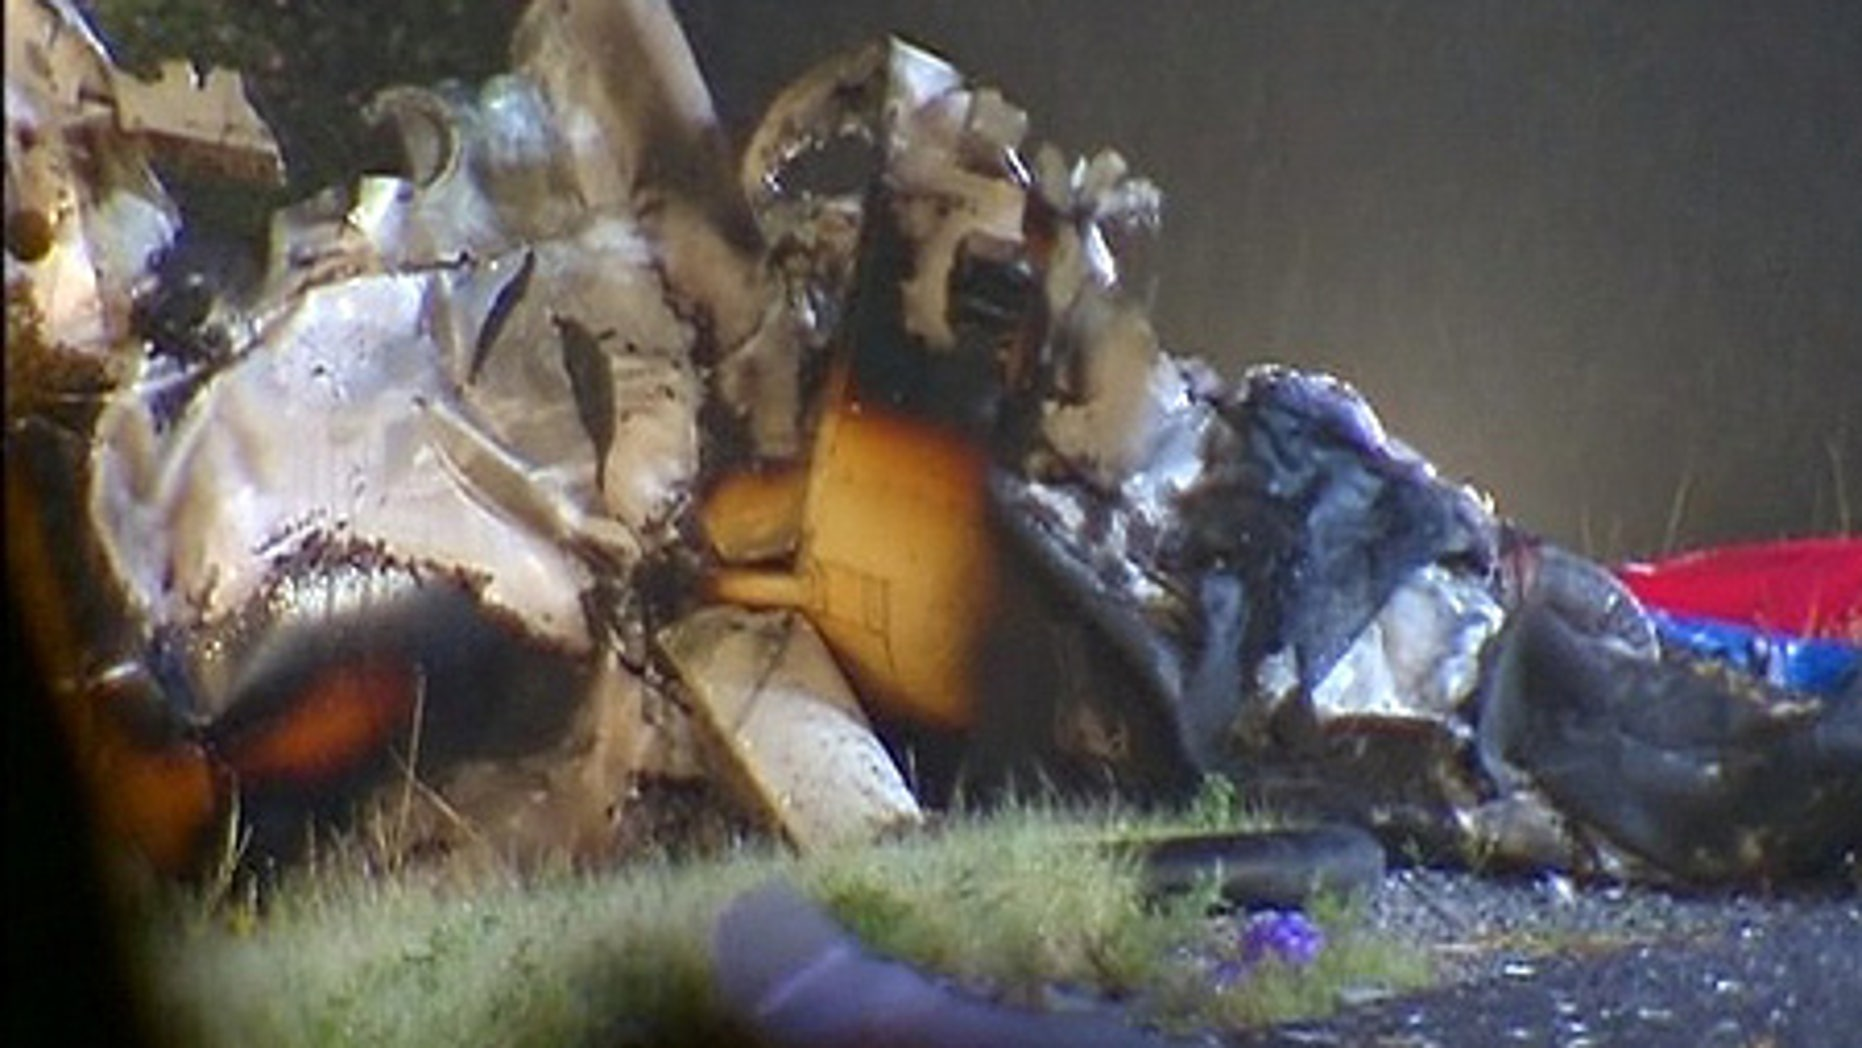 July 24: Wreckage of a Robinson R-44 helicopter is removed from the eastbound lanes of Interstate 70.